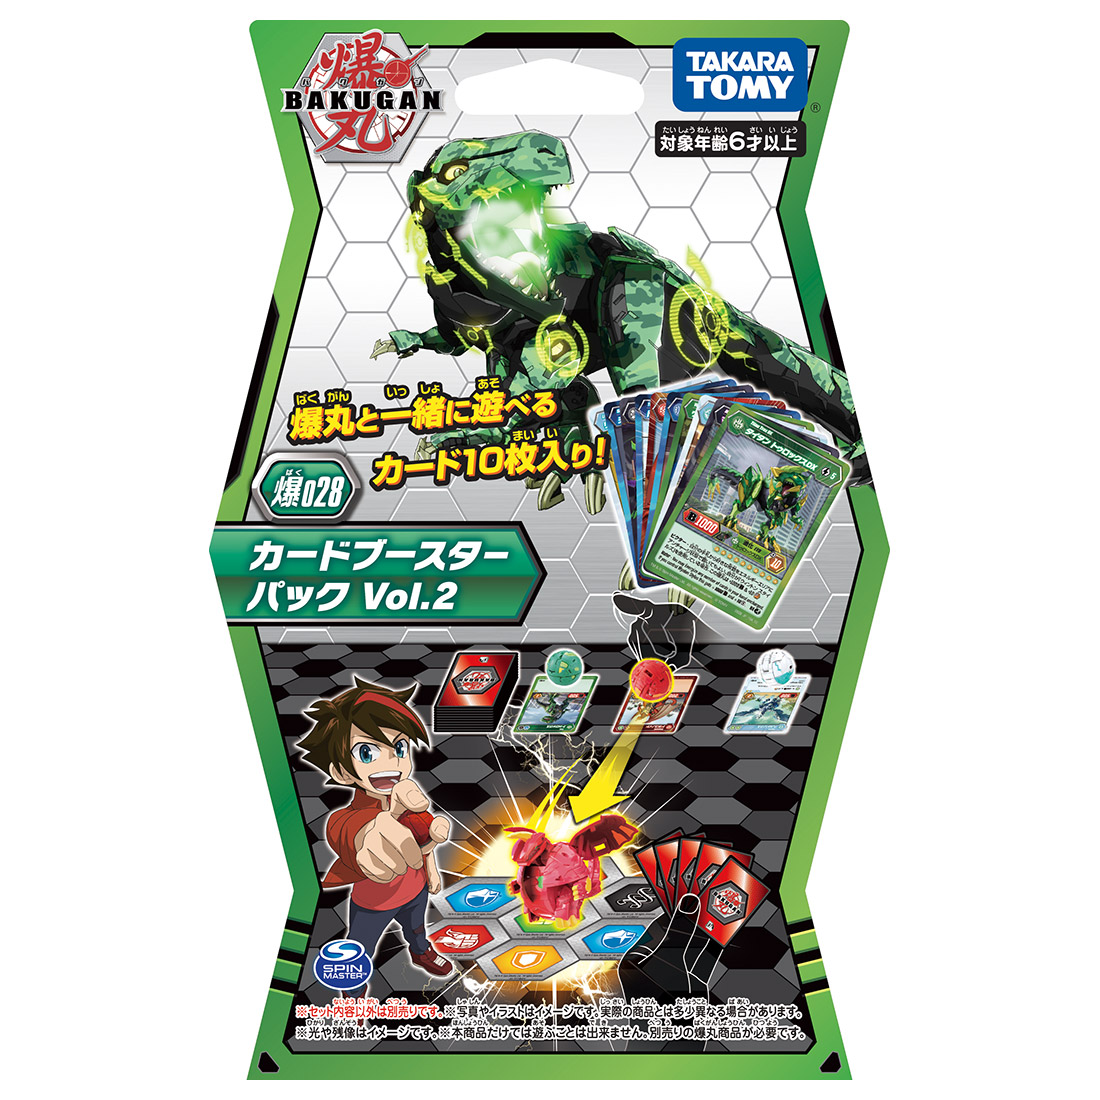 TAKARA TOMY Bakugan Trading Card Game 028 TCG Board Game Card Collections Kids Gifts Battle Brawlers BakuCores Battle Planet